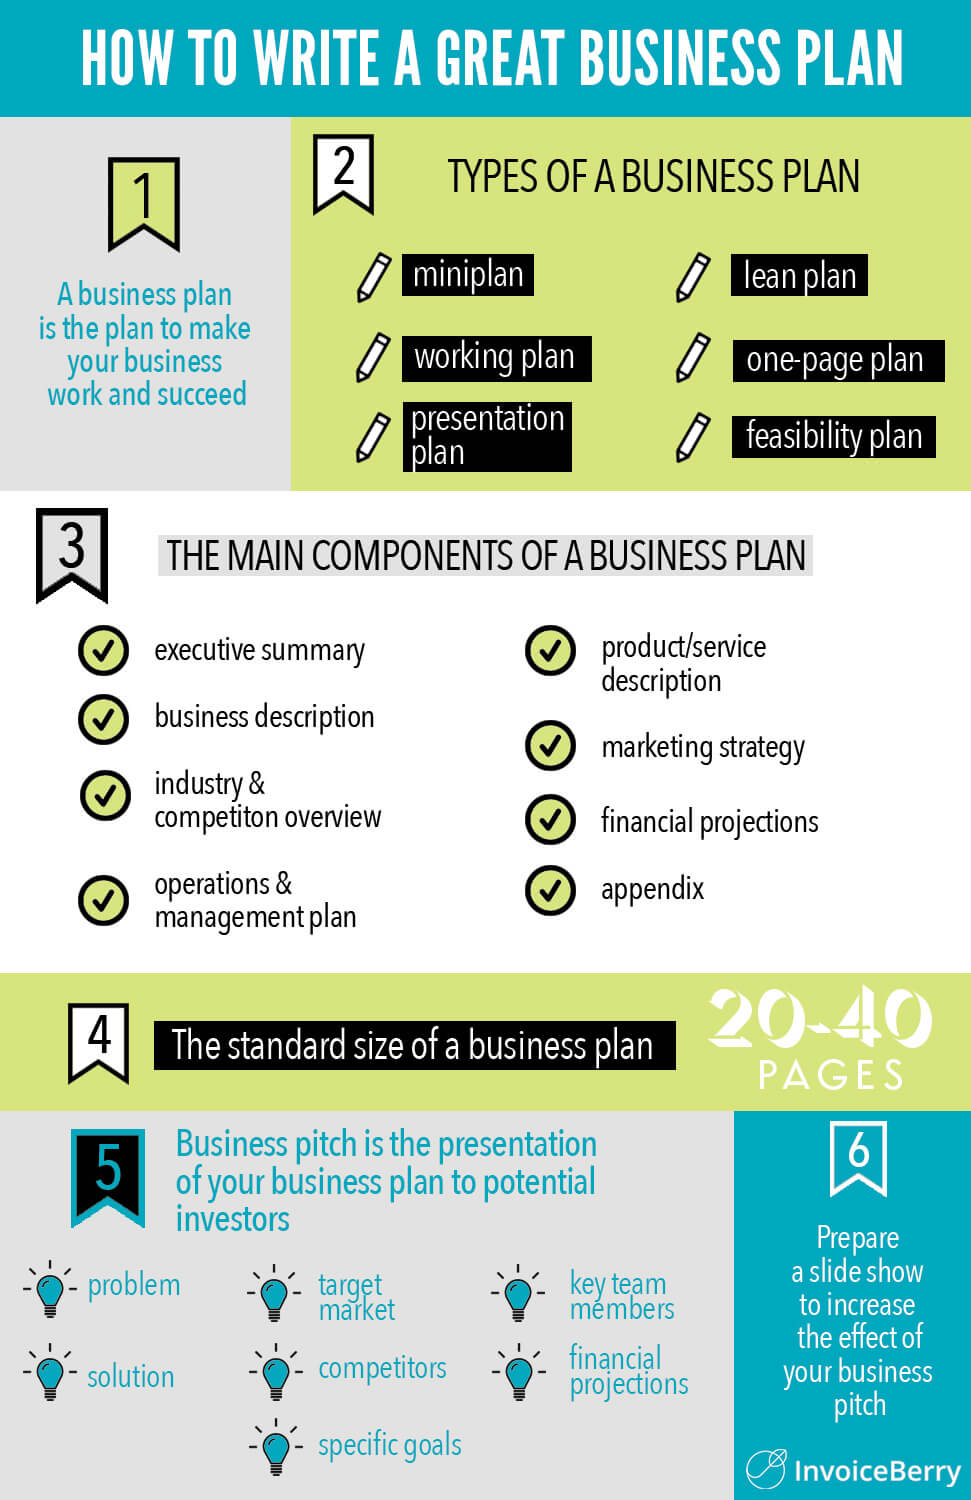 Business plan writing and startup tool kit